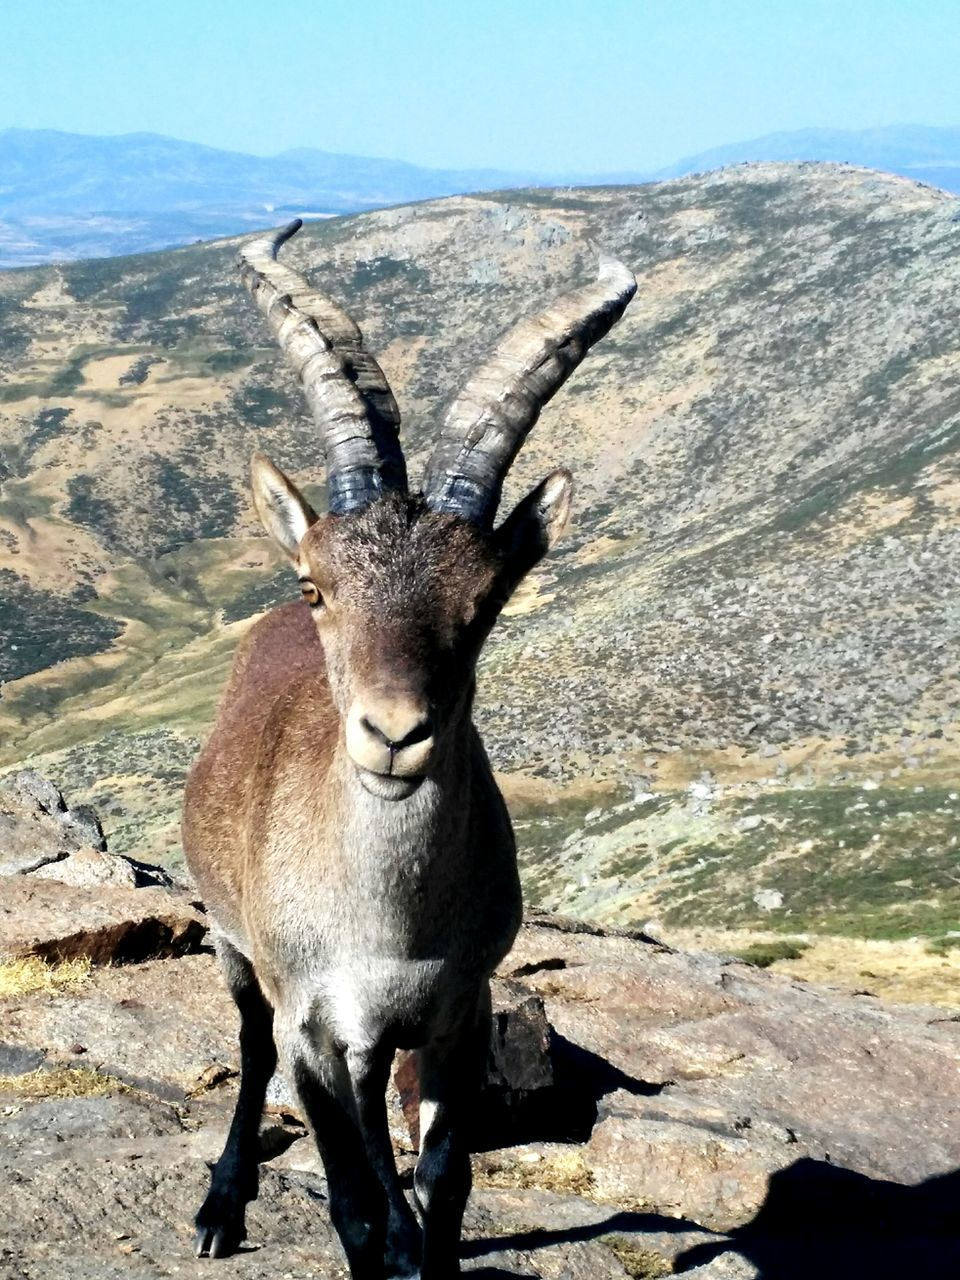 animal themes, animal, animal wildlife, one animal, animals in the wild, mammal, looking at camera, day, mountain, nature, portrait, rock, vertebrate, rock - object, solid, horned, no people, landscape, sunlight, standing, outdoors, herbivorous